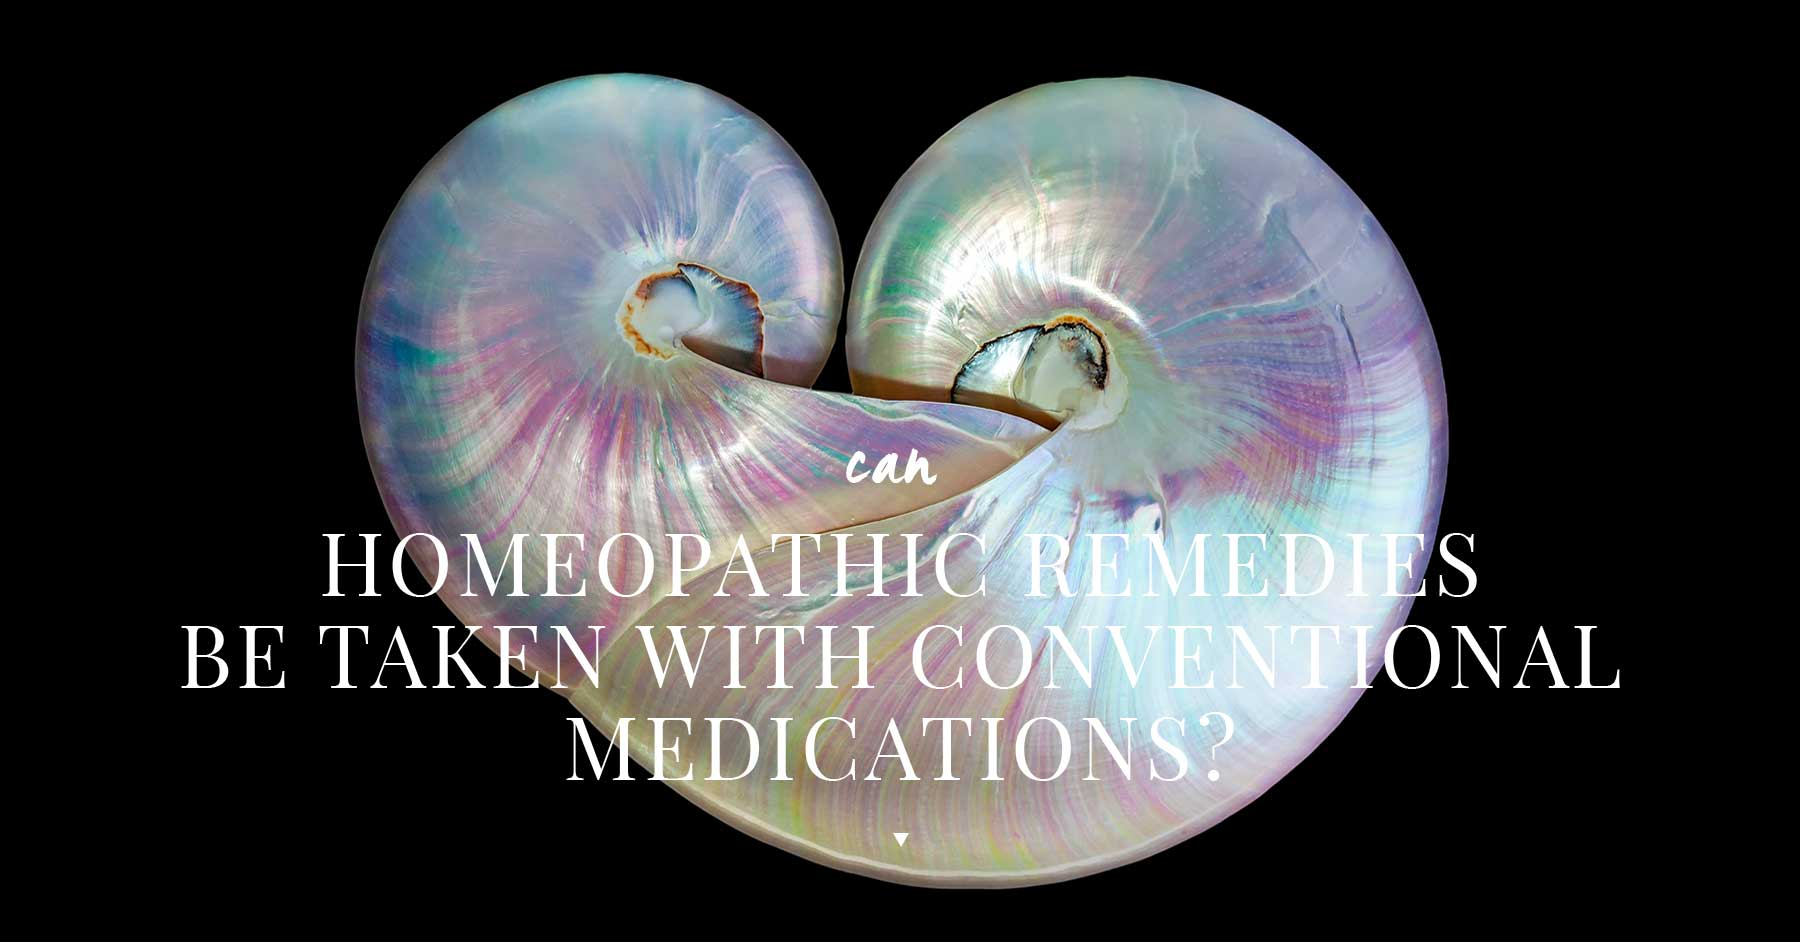 Can Homeopathic Remedies be taken with Conventional Medications?